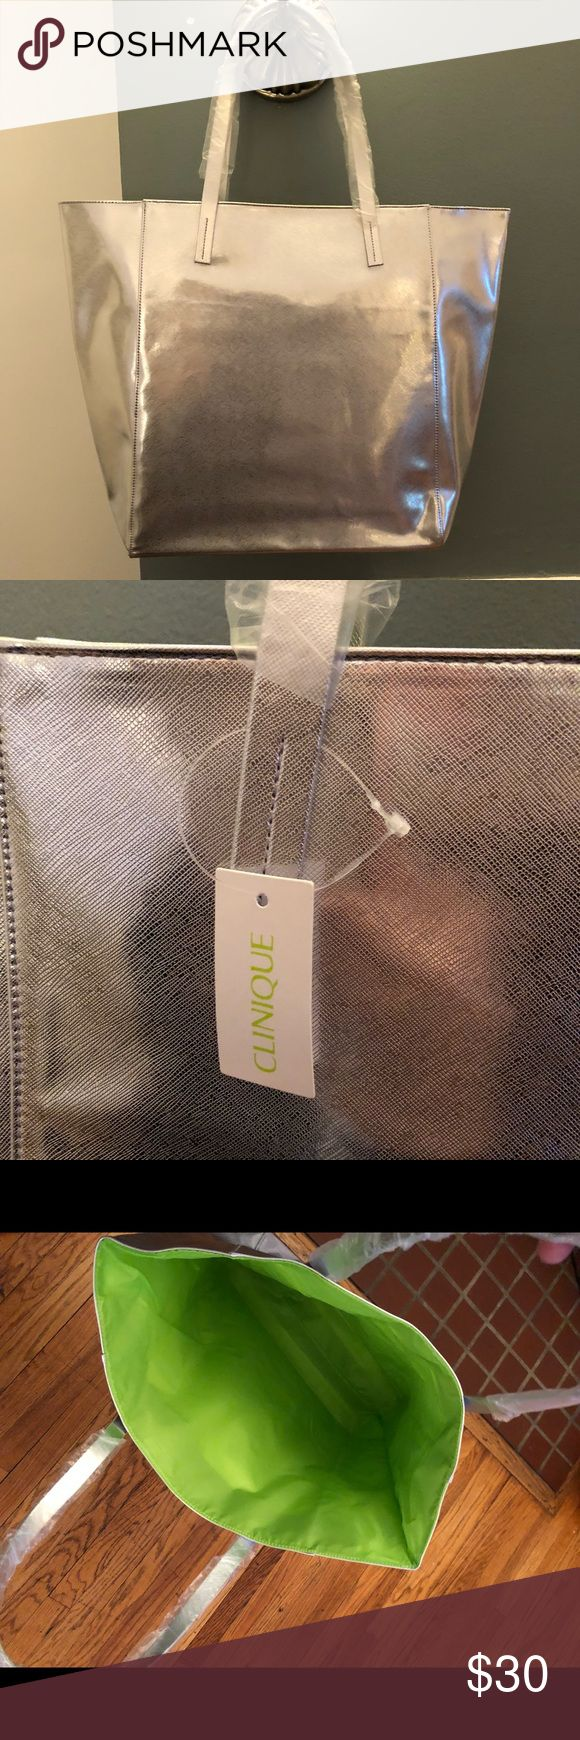 Large Silver Tote Large Silver Tote bag by Clinique. Lime green lining inside the bag - NWT. Clinique Bags Totes